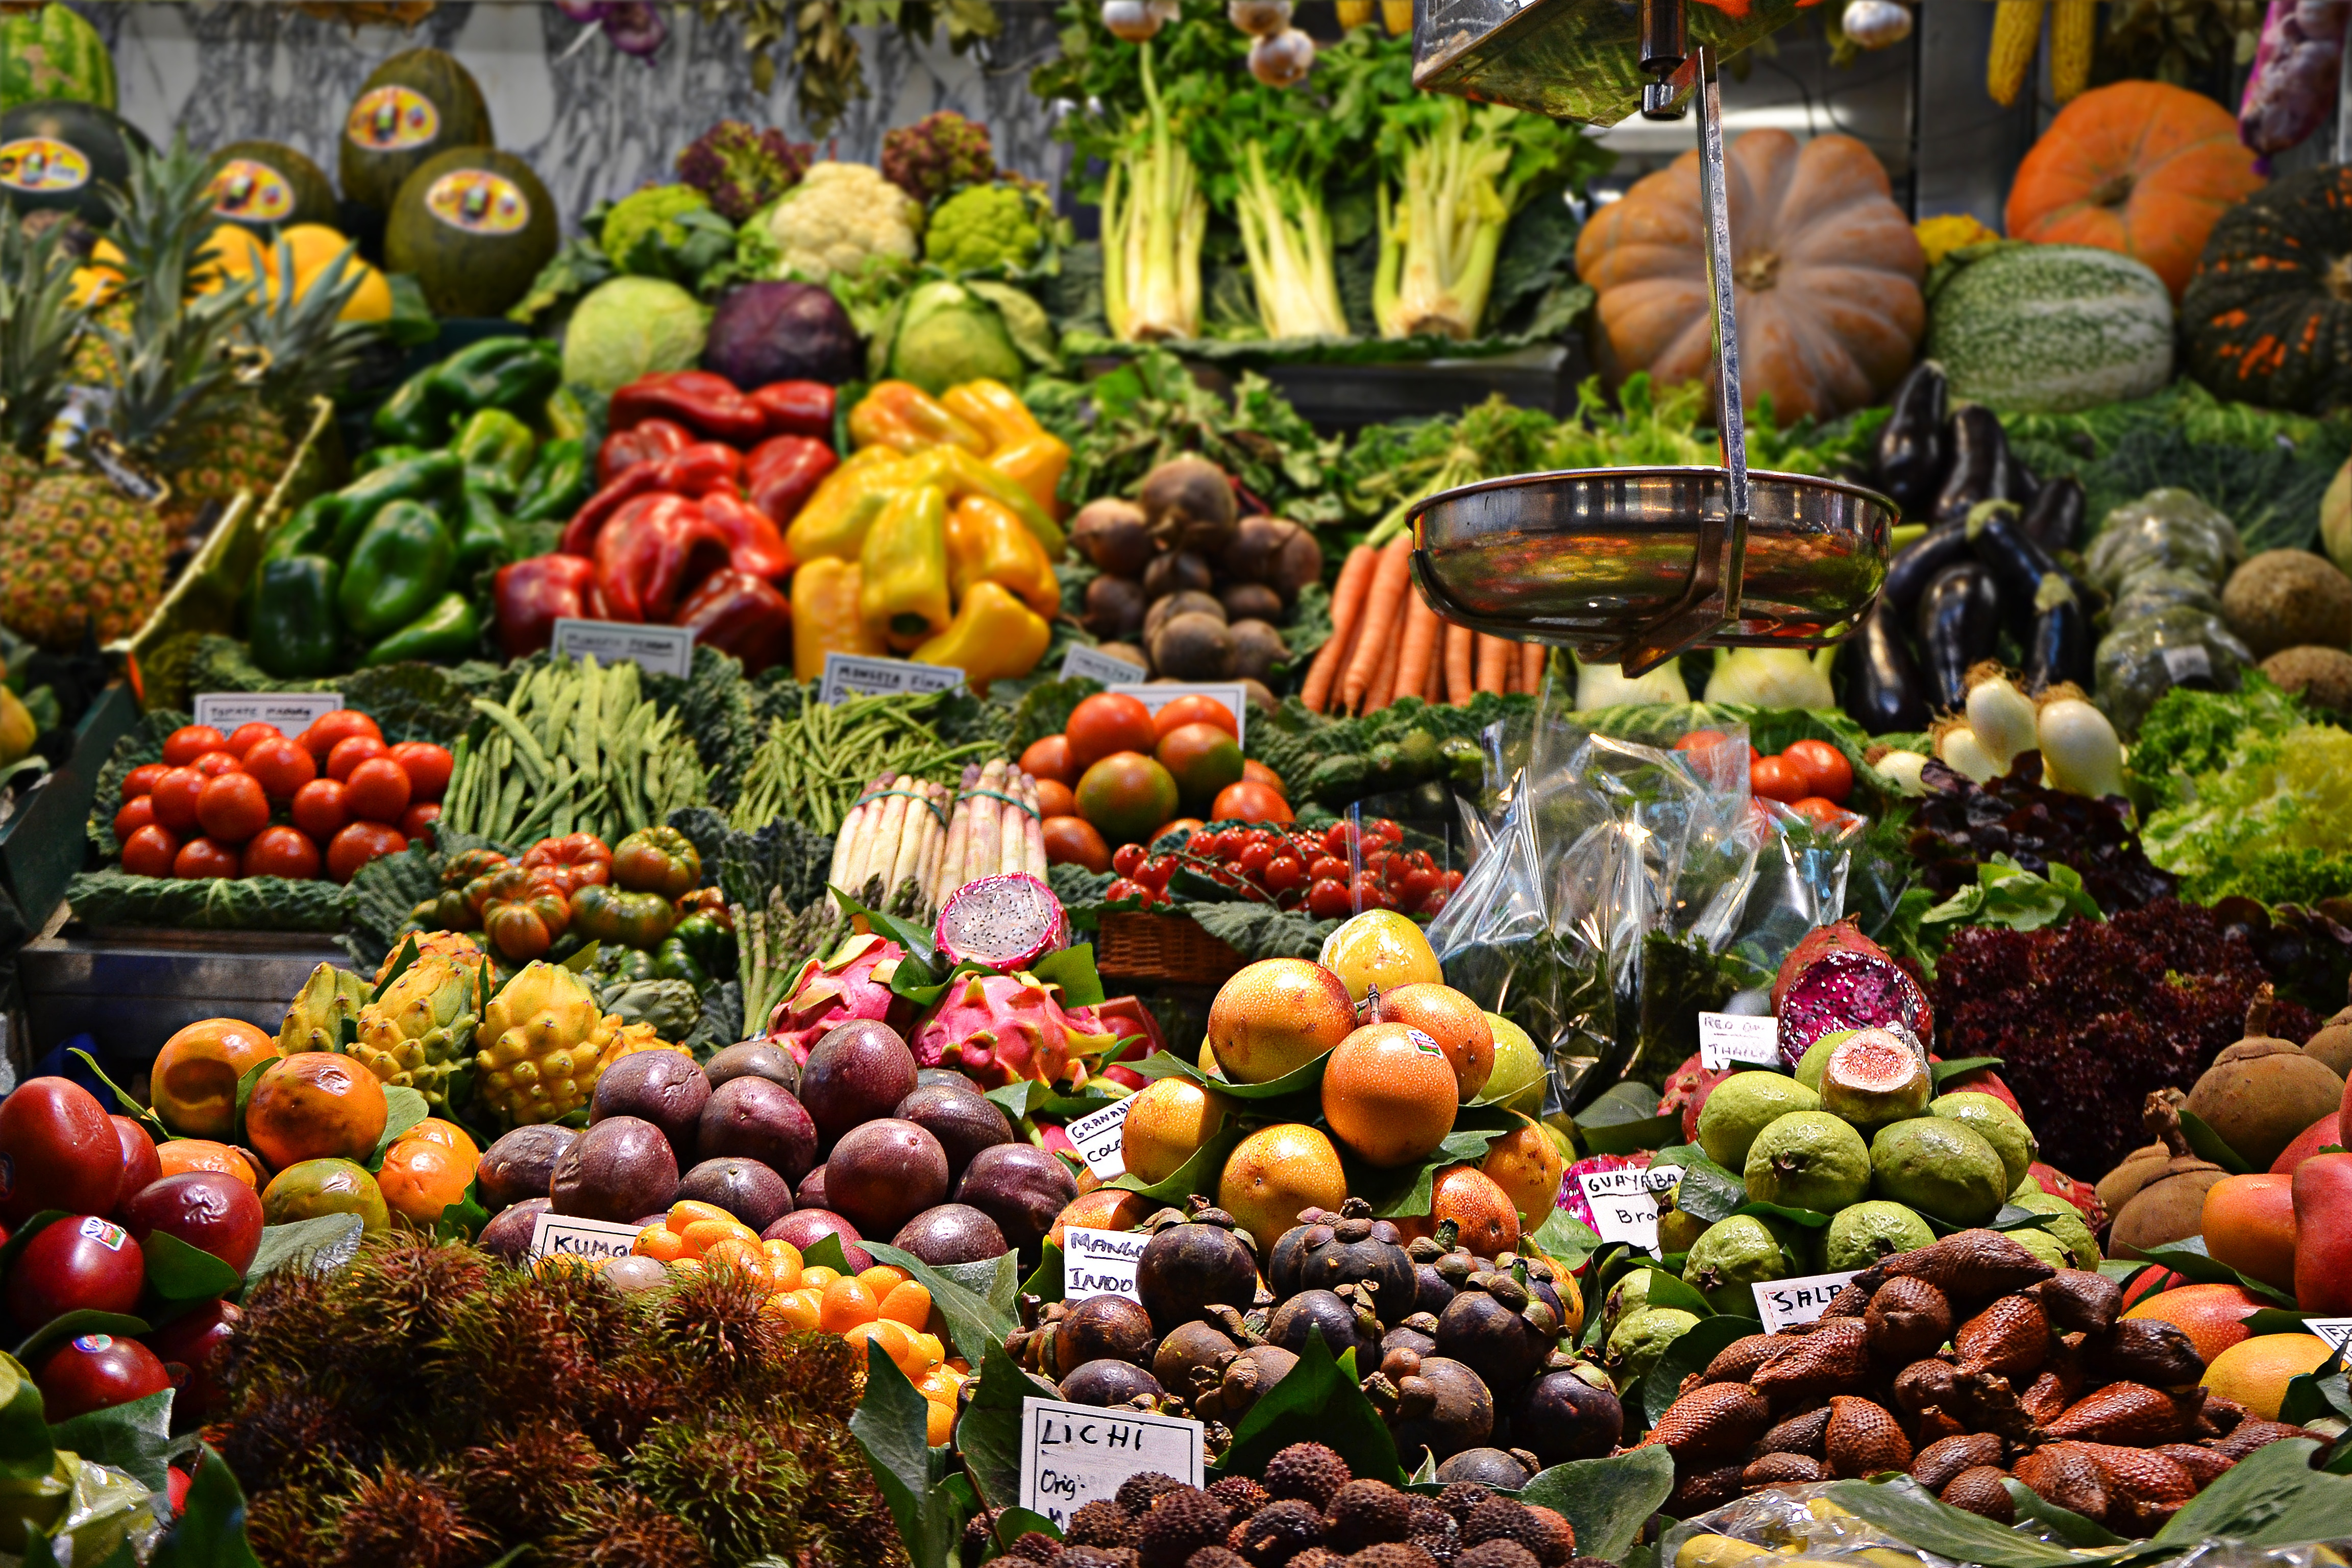 A food market with a wide array of different vegetables